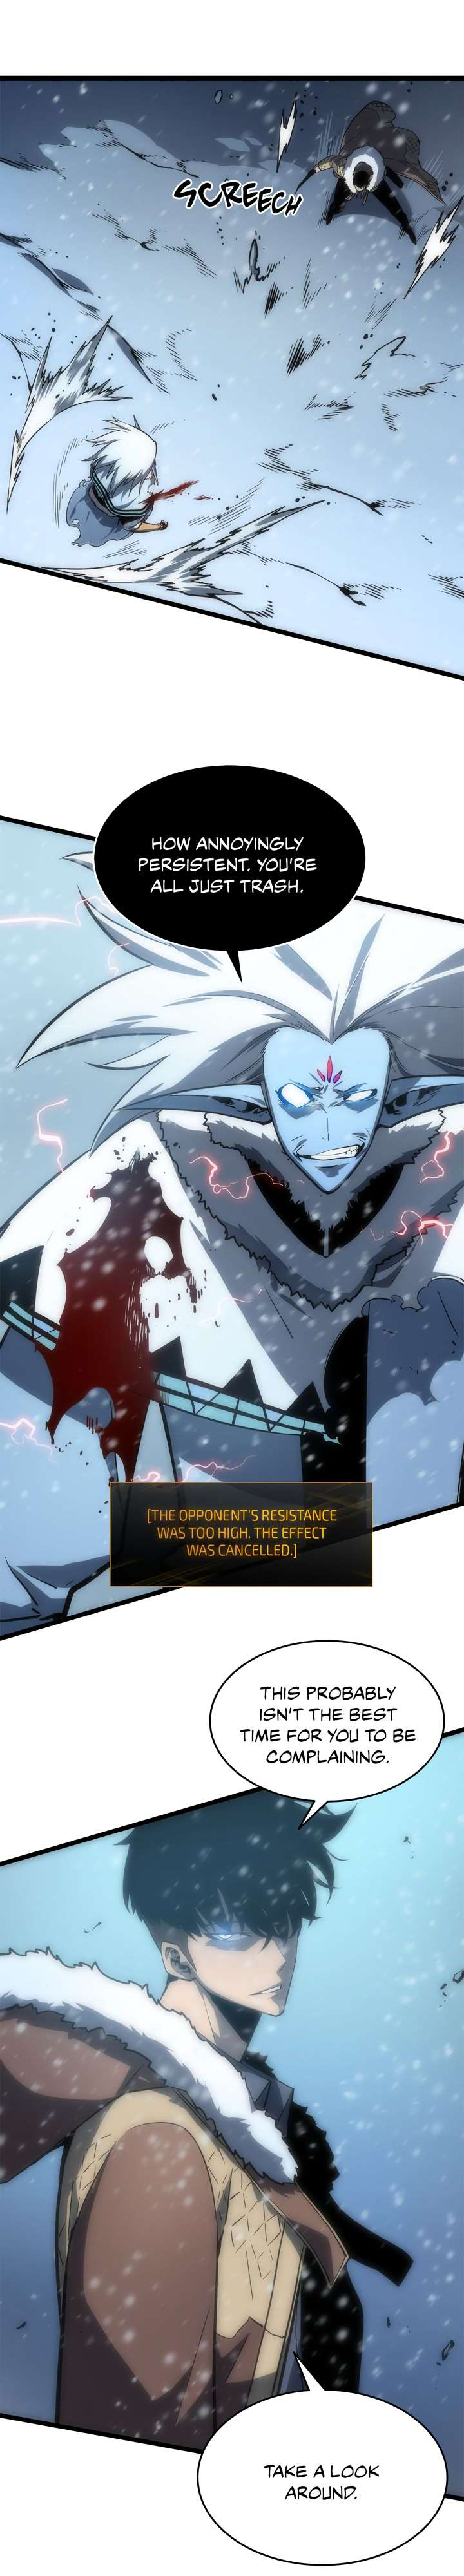 Solo Leveling Chapter 54 Page 13